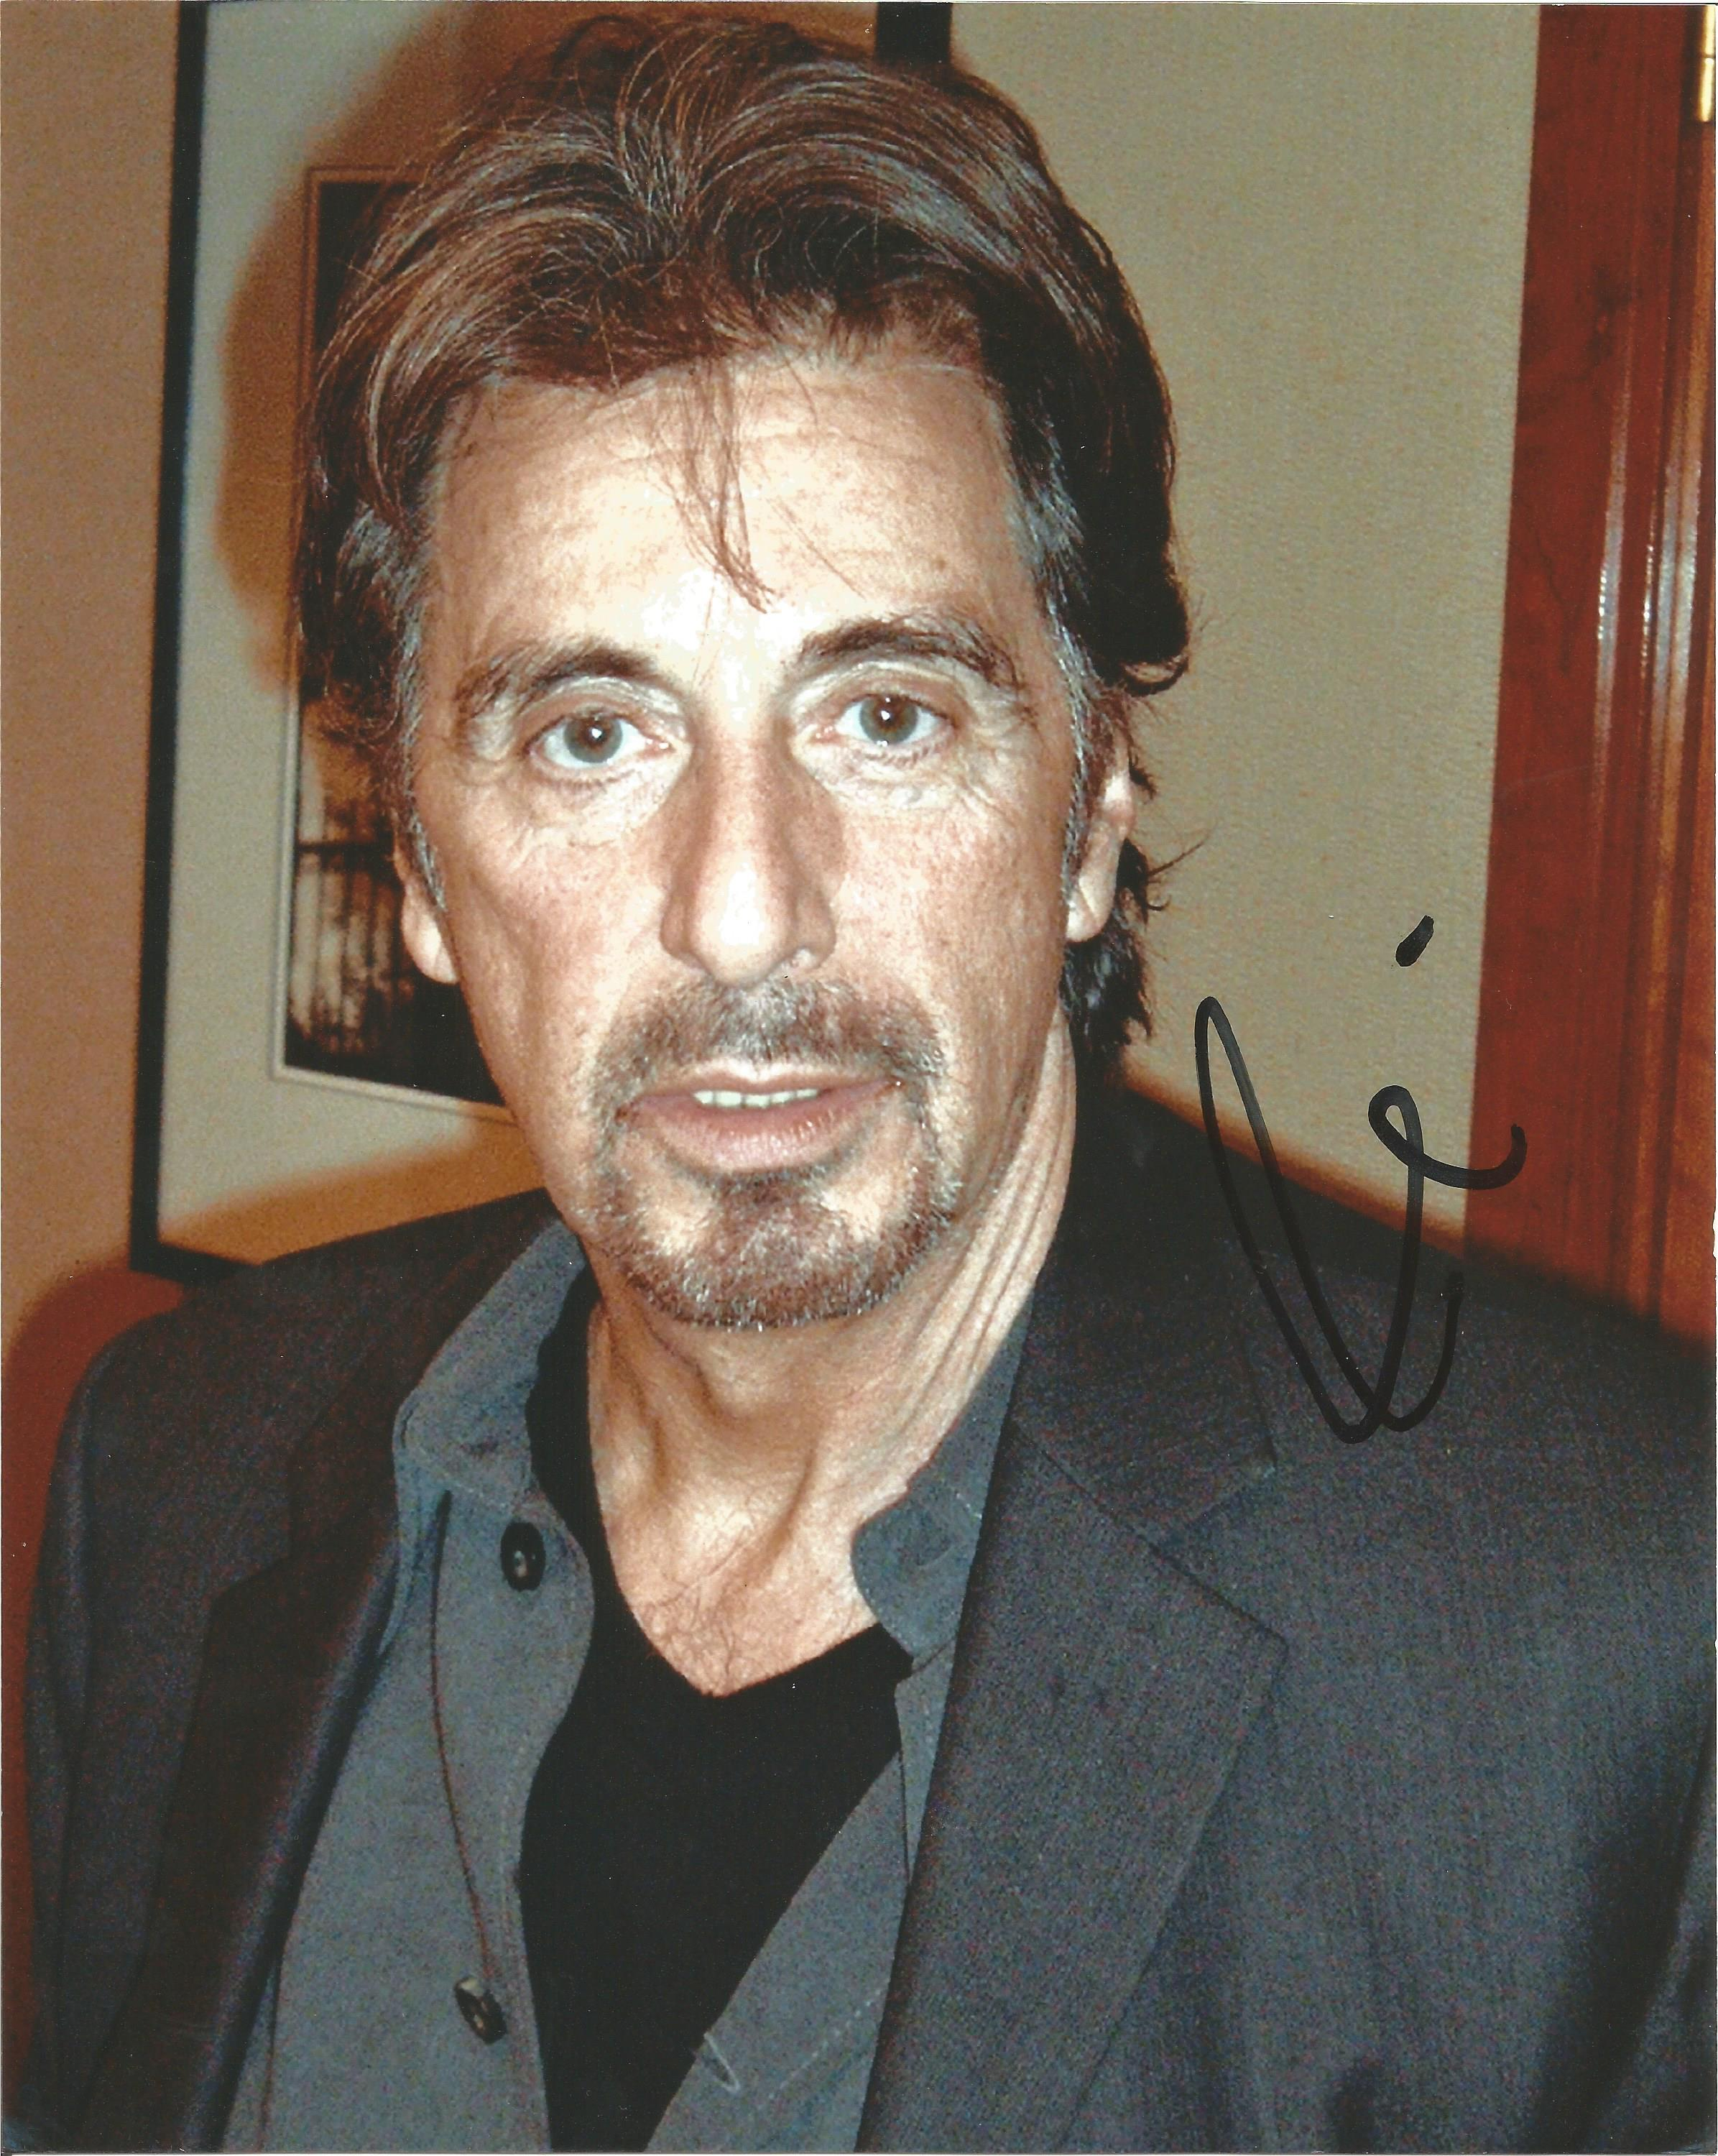 Lot 37 - Al Pacino signed 10 x 8 colour Photoshoot Portrait Photo, from in person collection autographed at